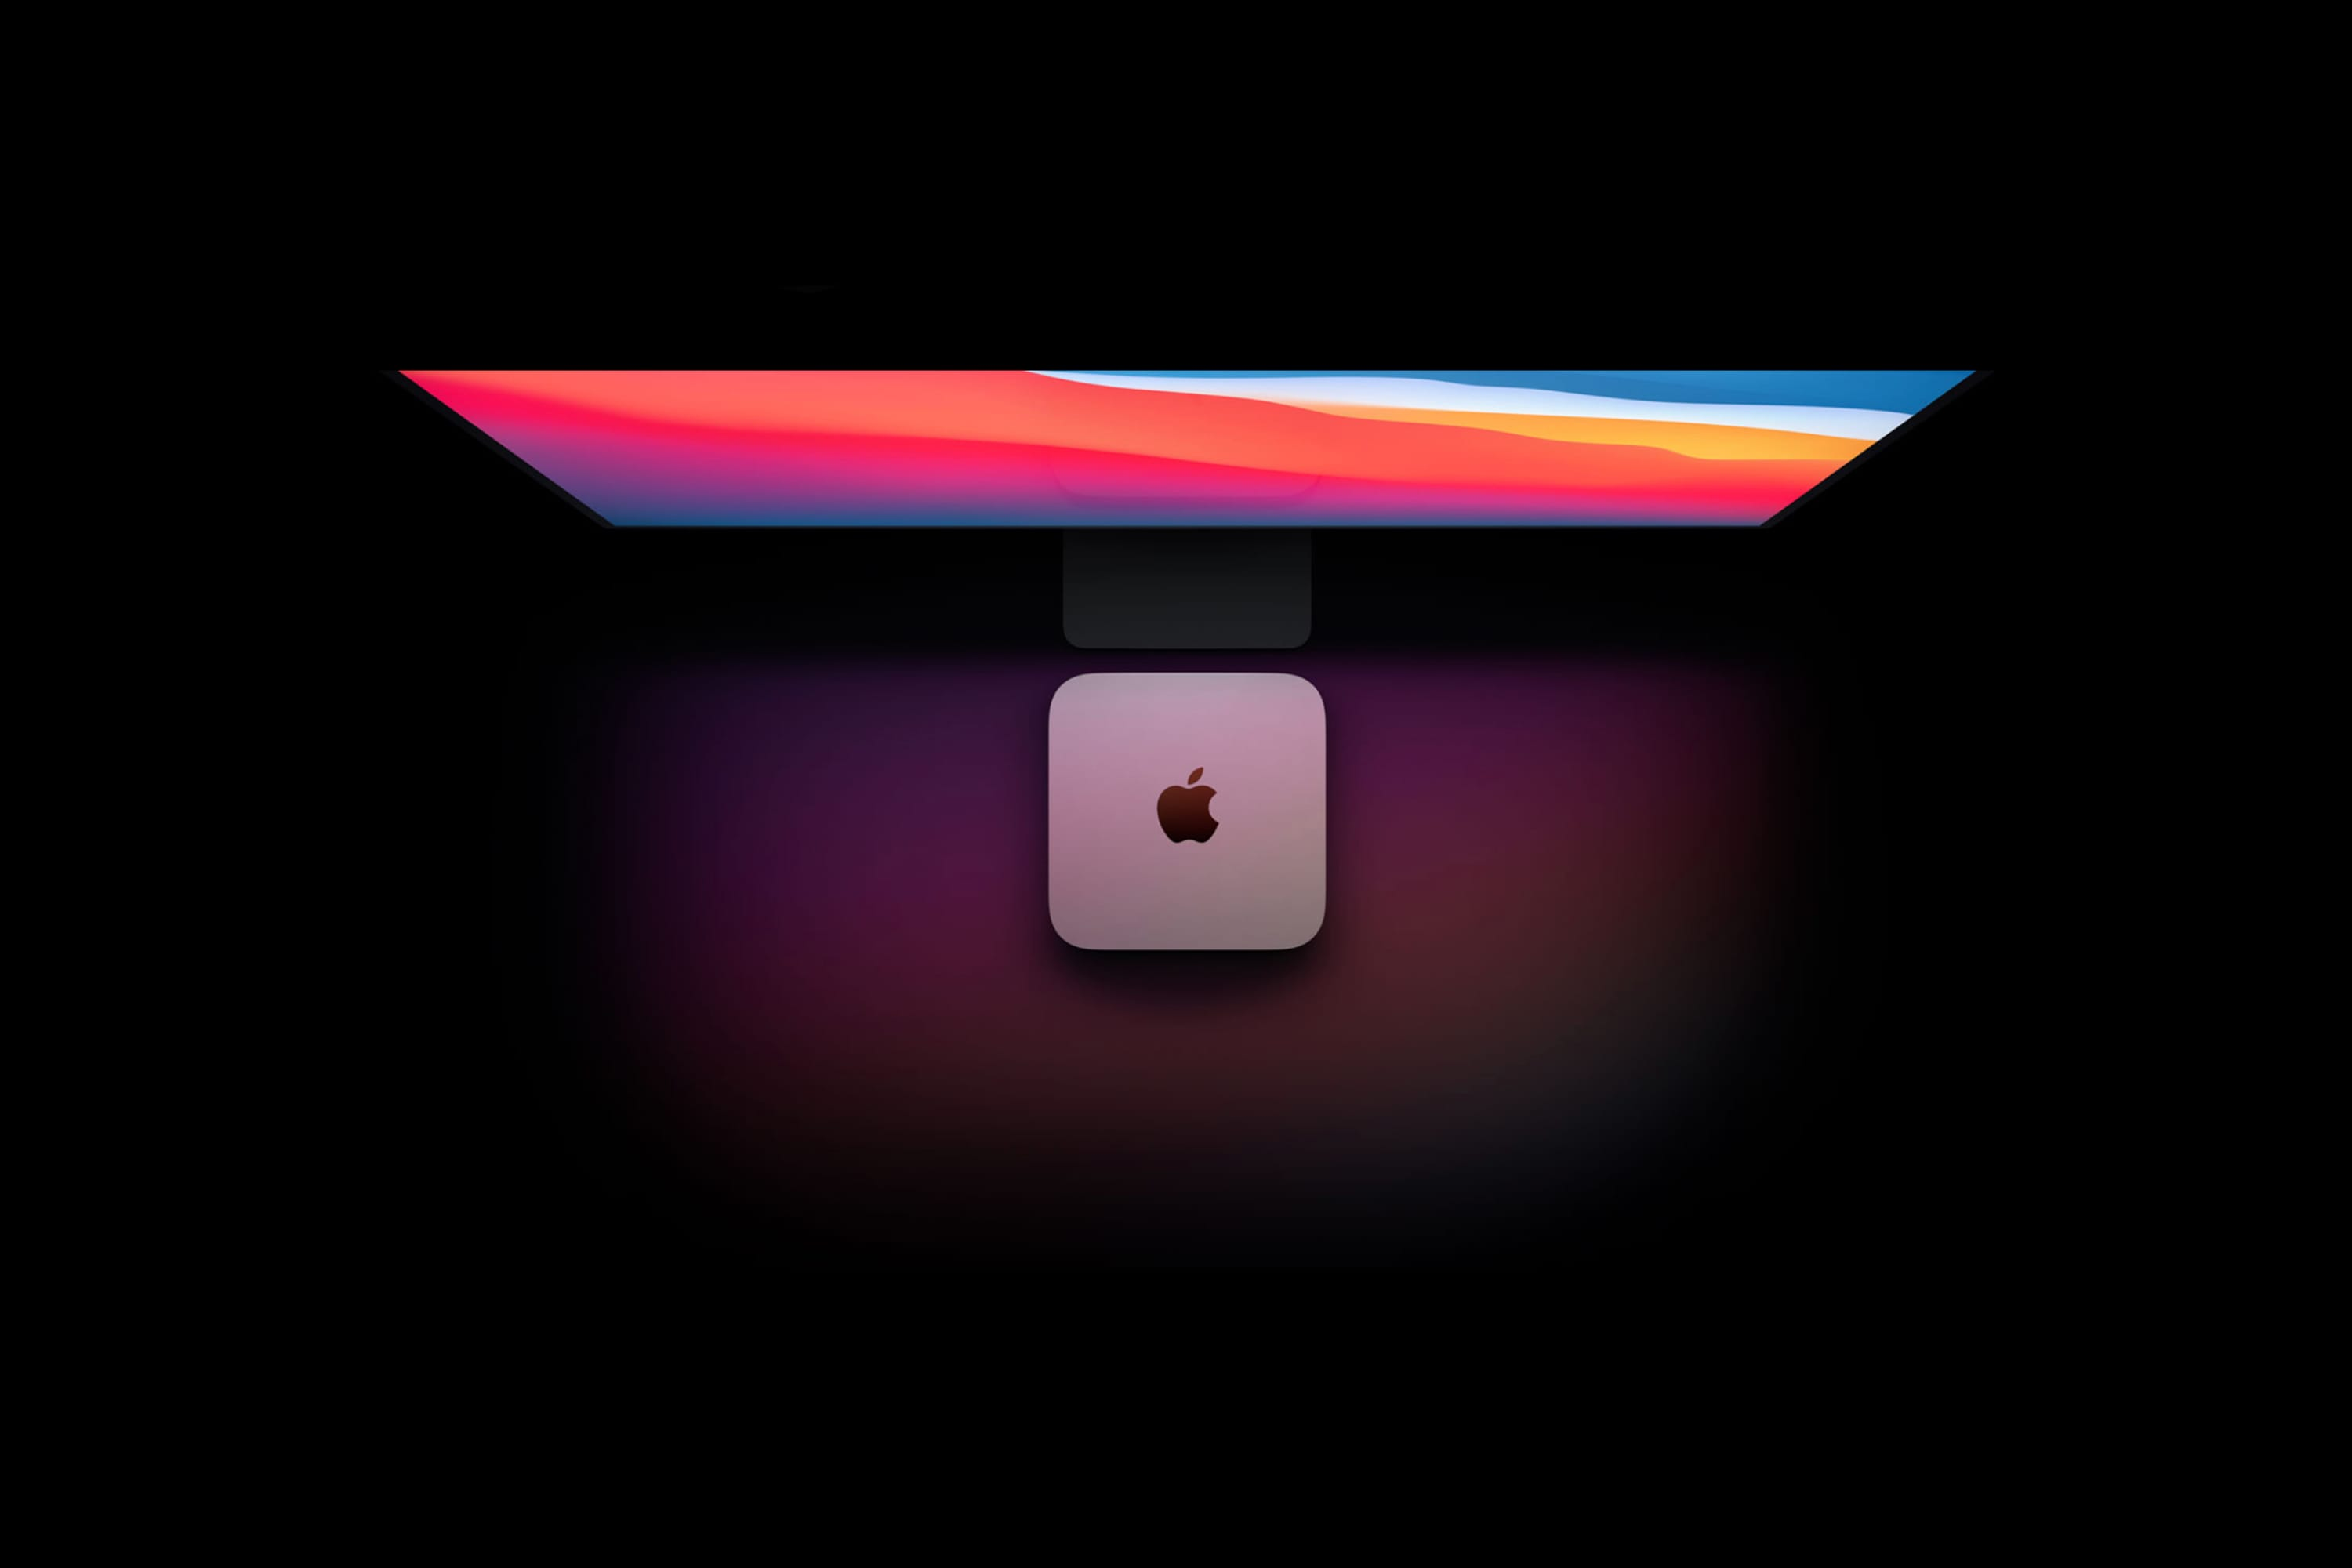 apple-releases-new-macbook-air-macbook-pro-and-mac-mini-during-november-event-20201110-4